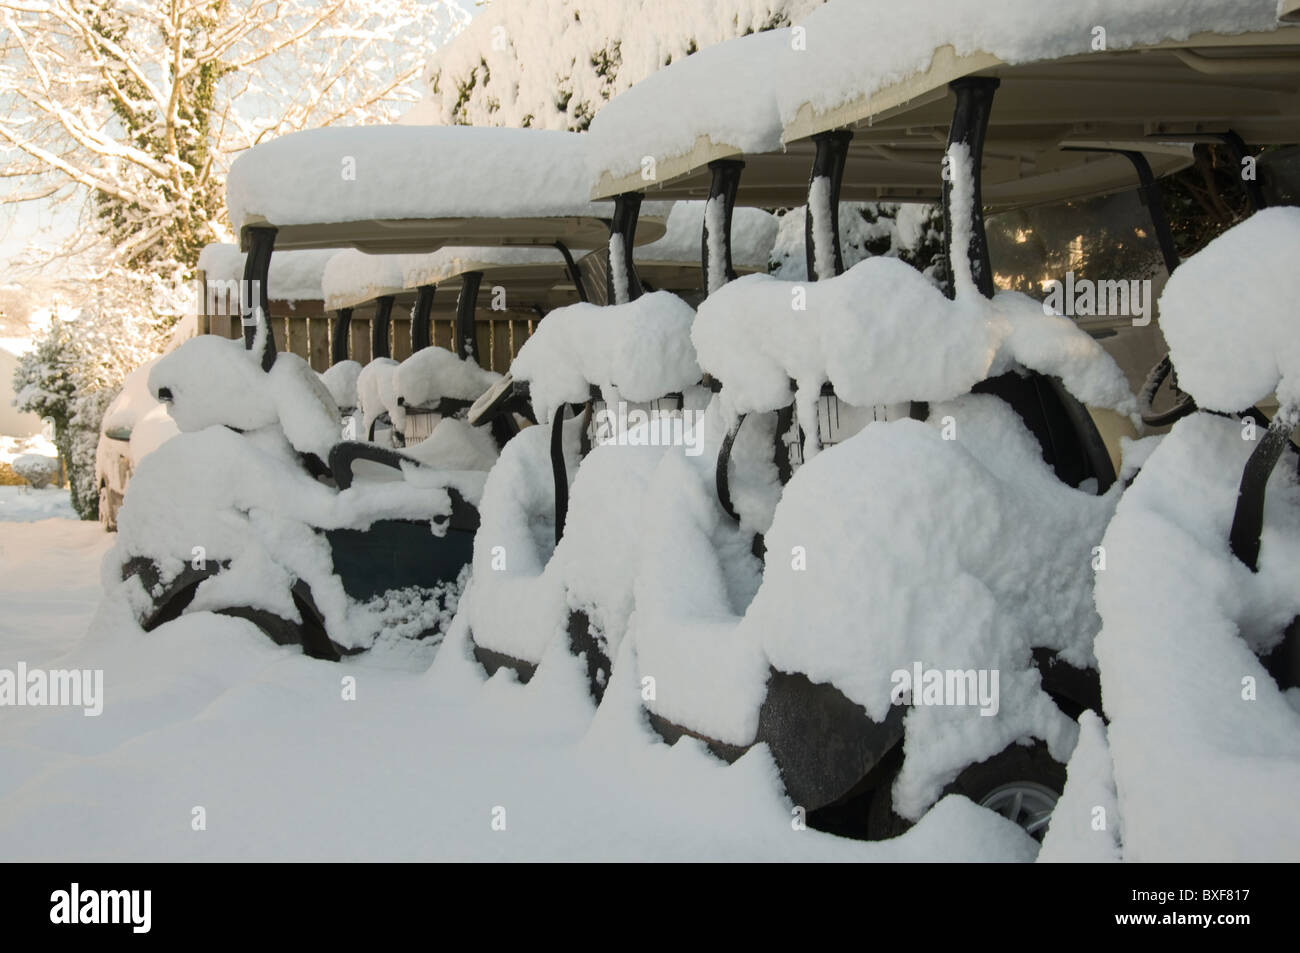 Golf buggies covered in snow at a rural Welsh golf club - Stock Image